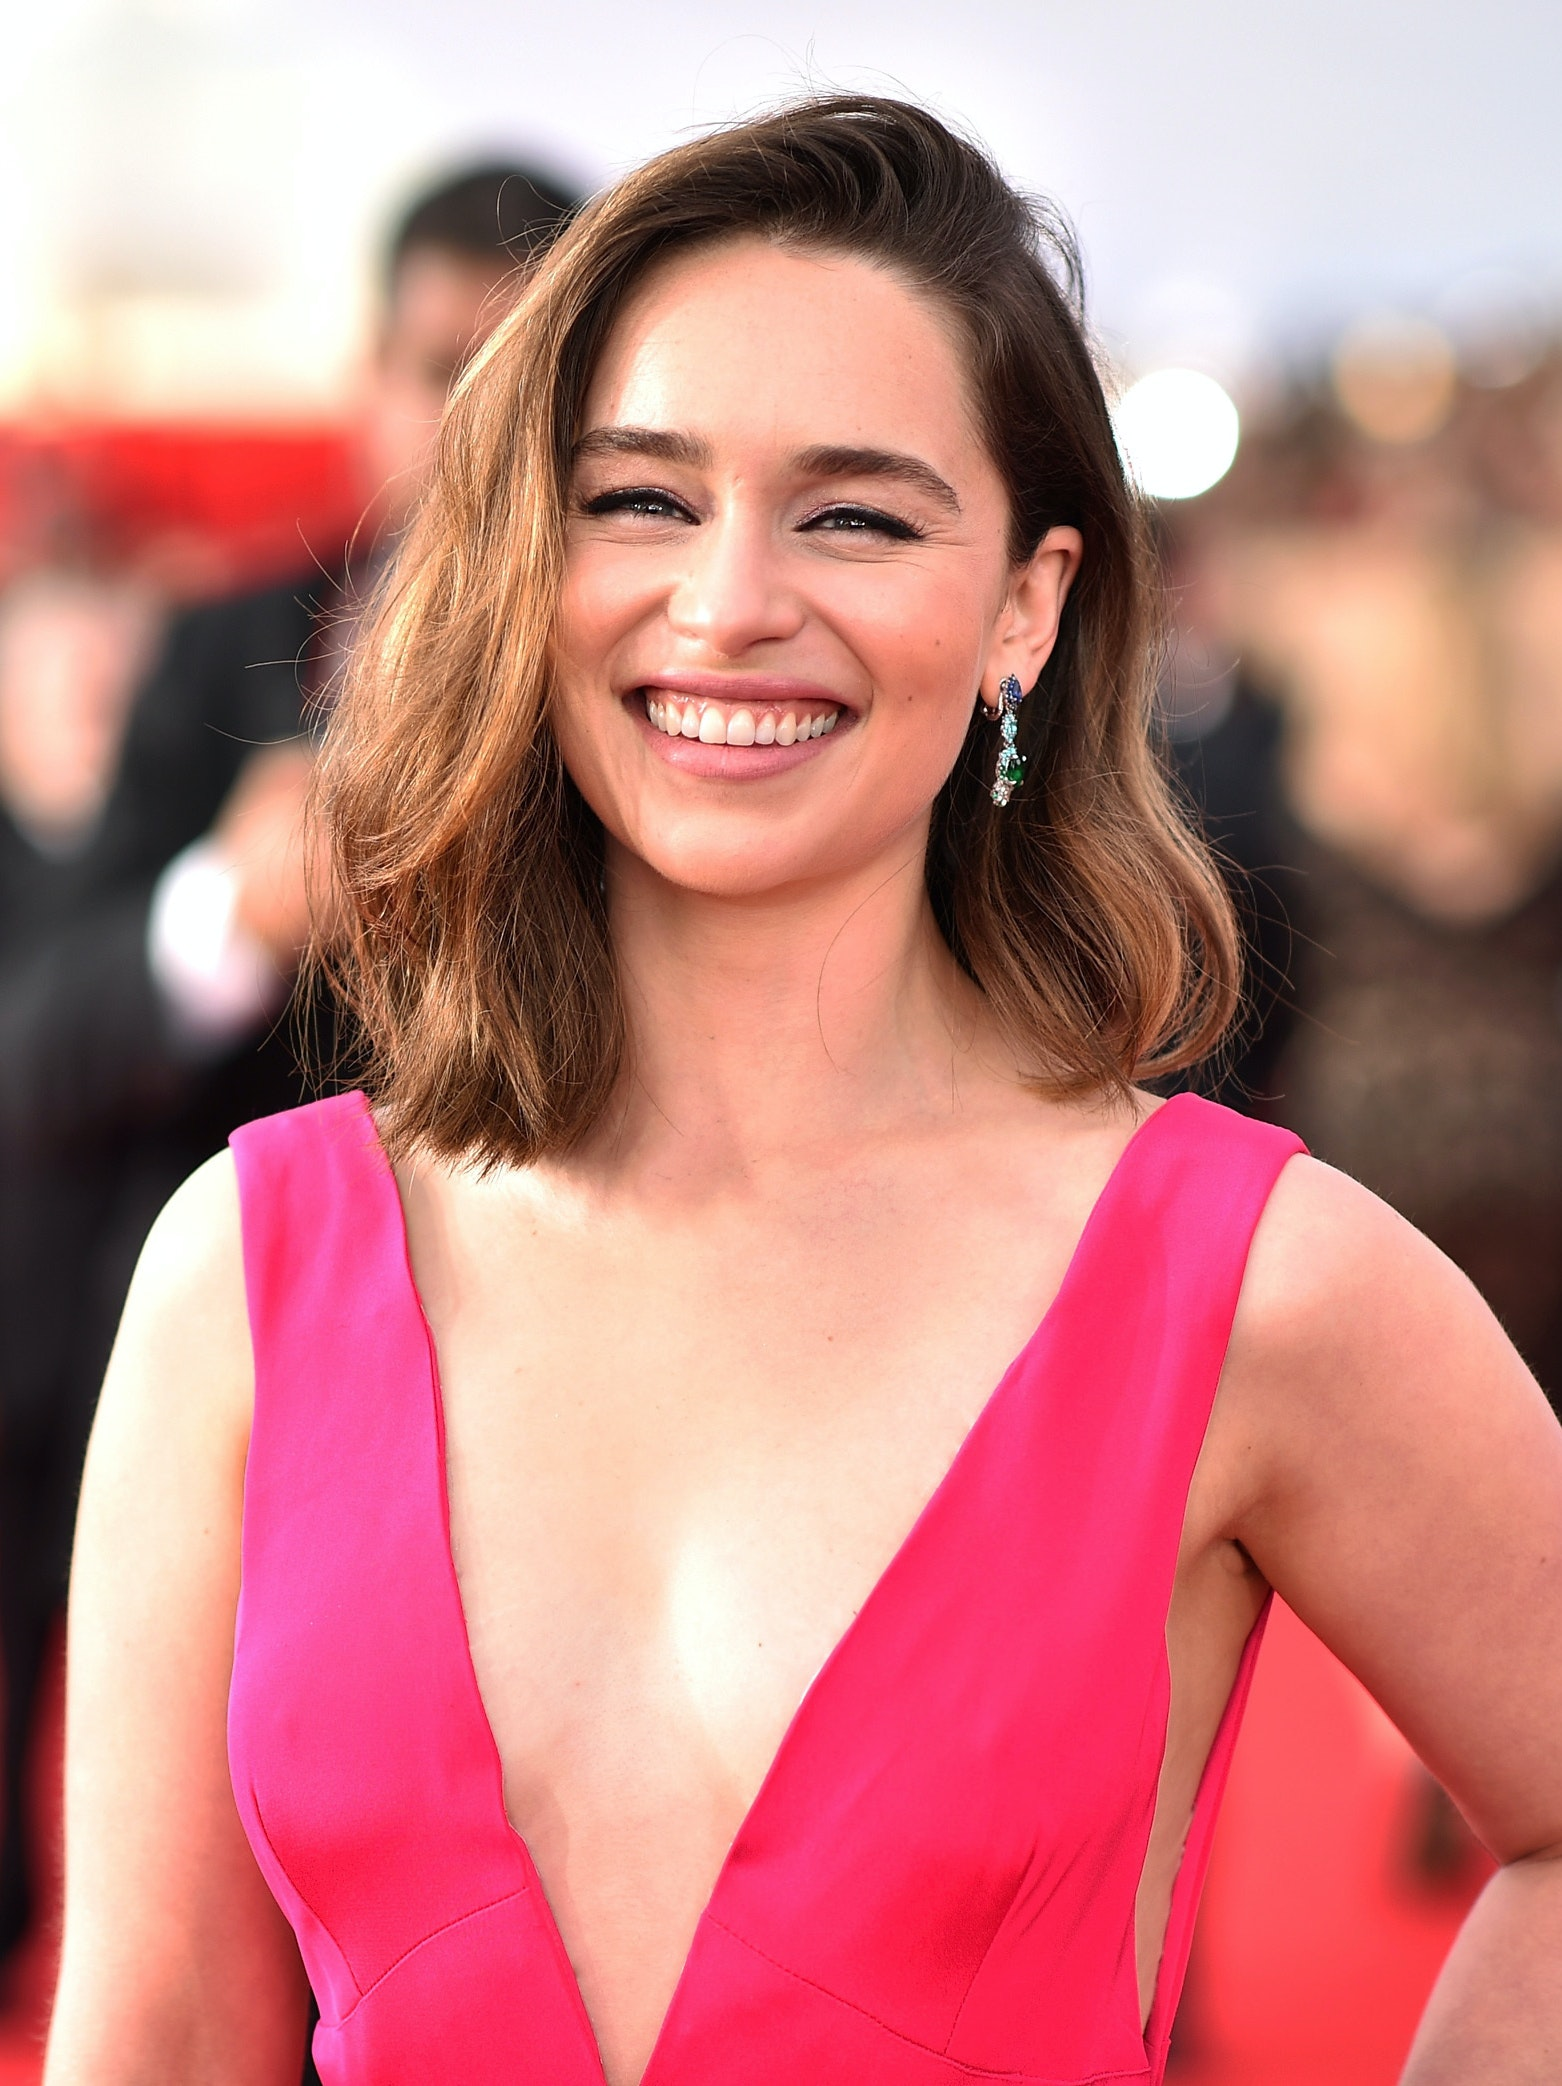 Actress Emilia Clarke attends The 22nd Annual Screen Actors Guild Awards at The Shrine Auditorium on January 30, 2016 in Los Angeles, California. 25650_013